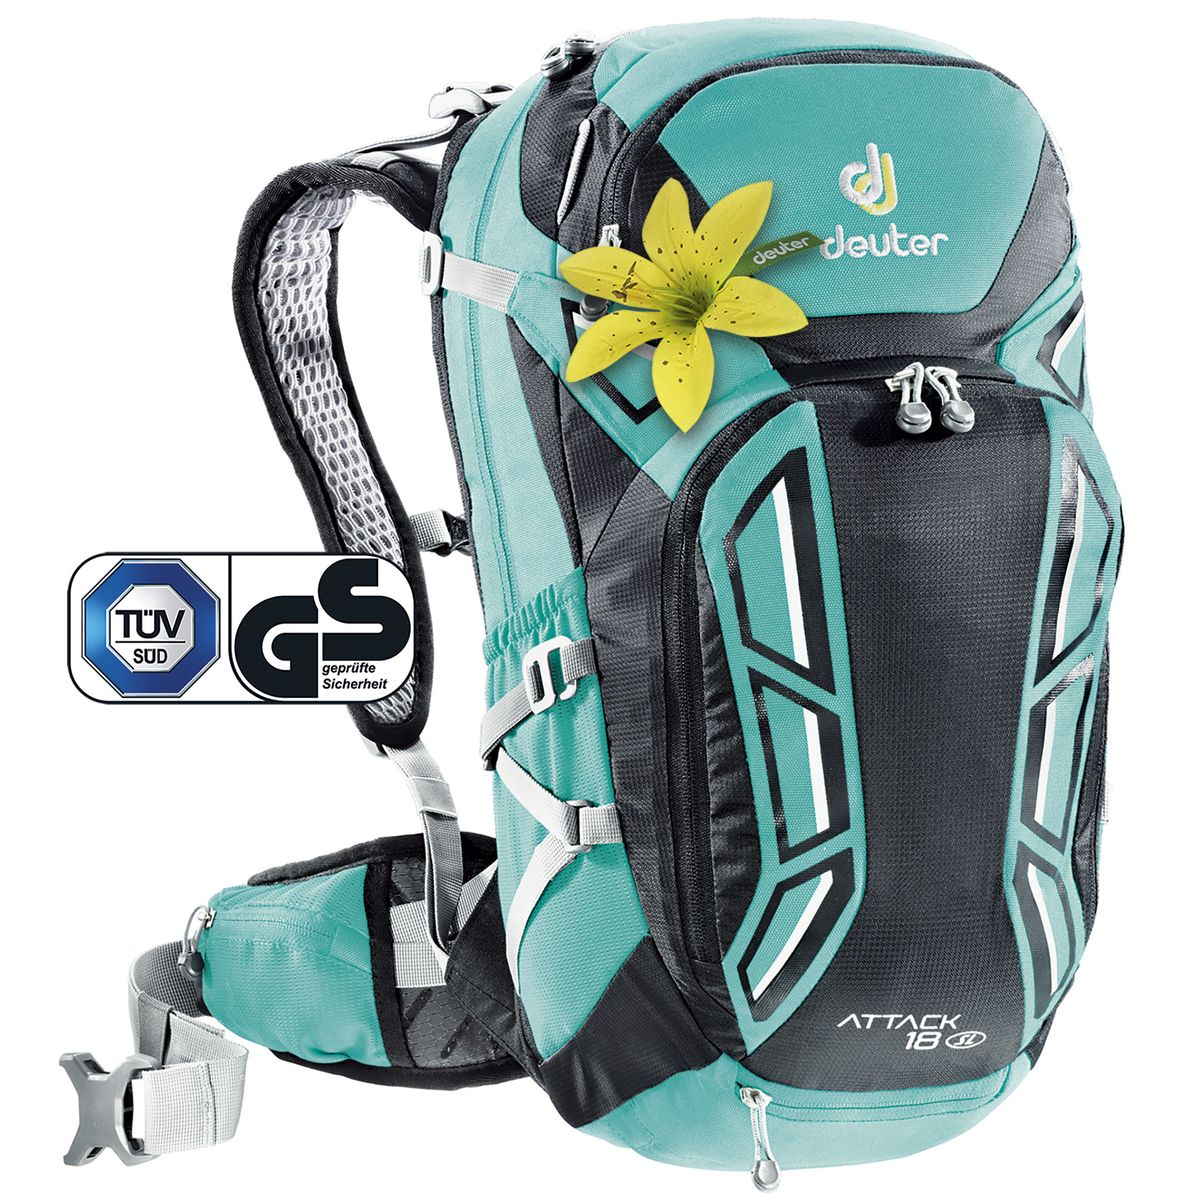 ATTACK 18 SL women's backpack